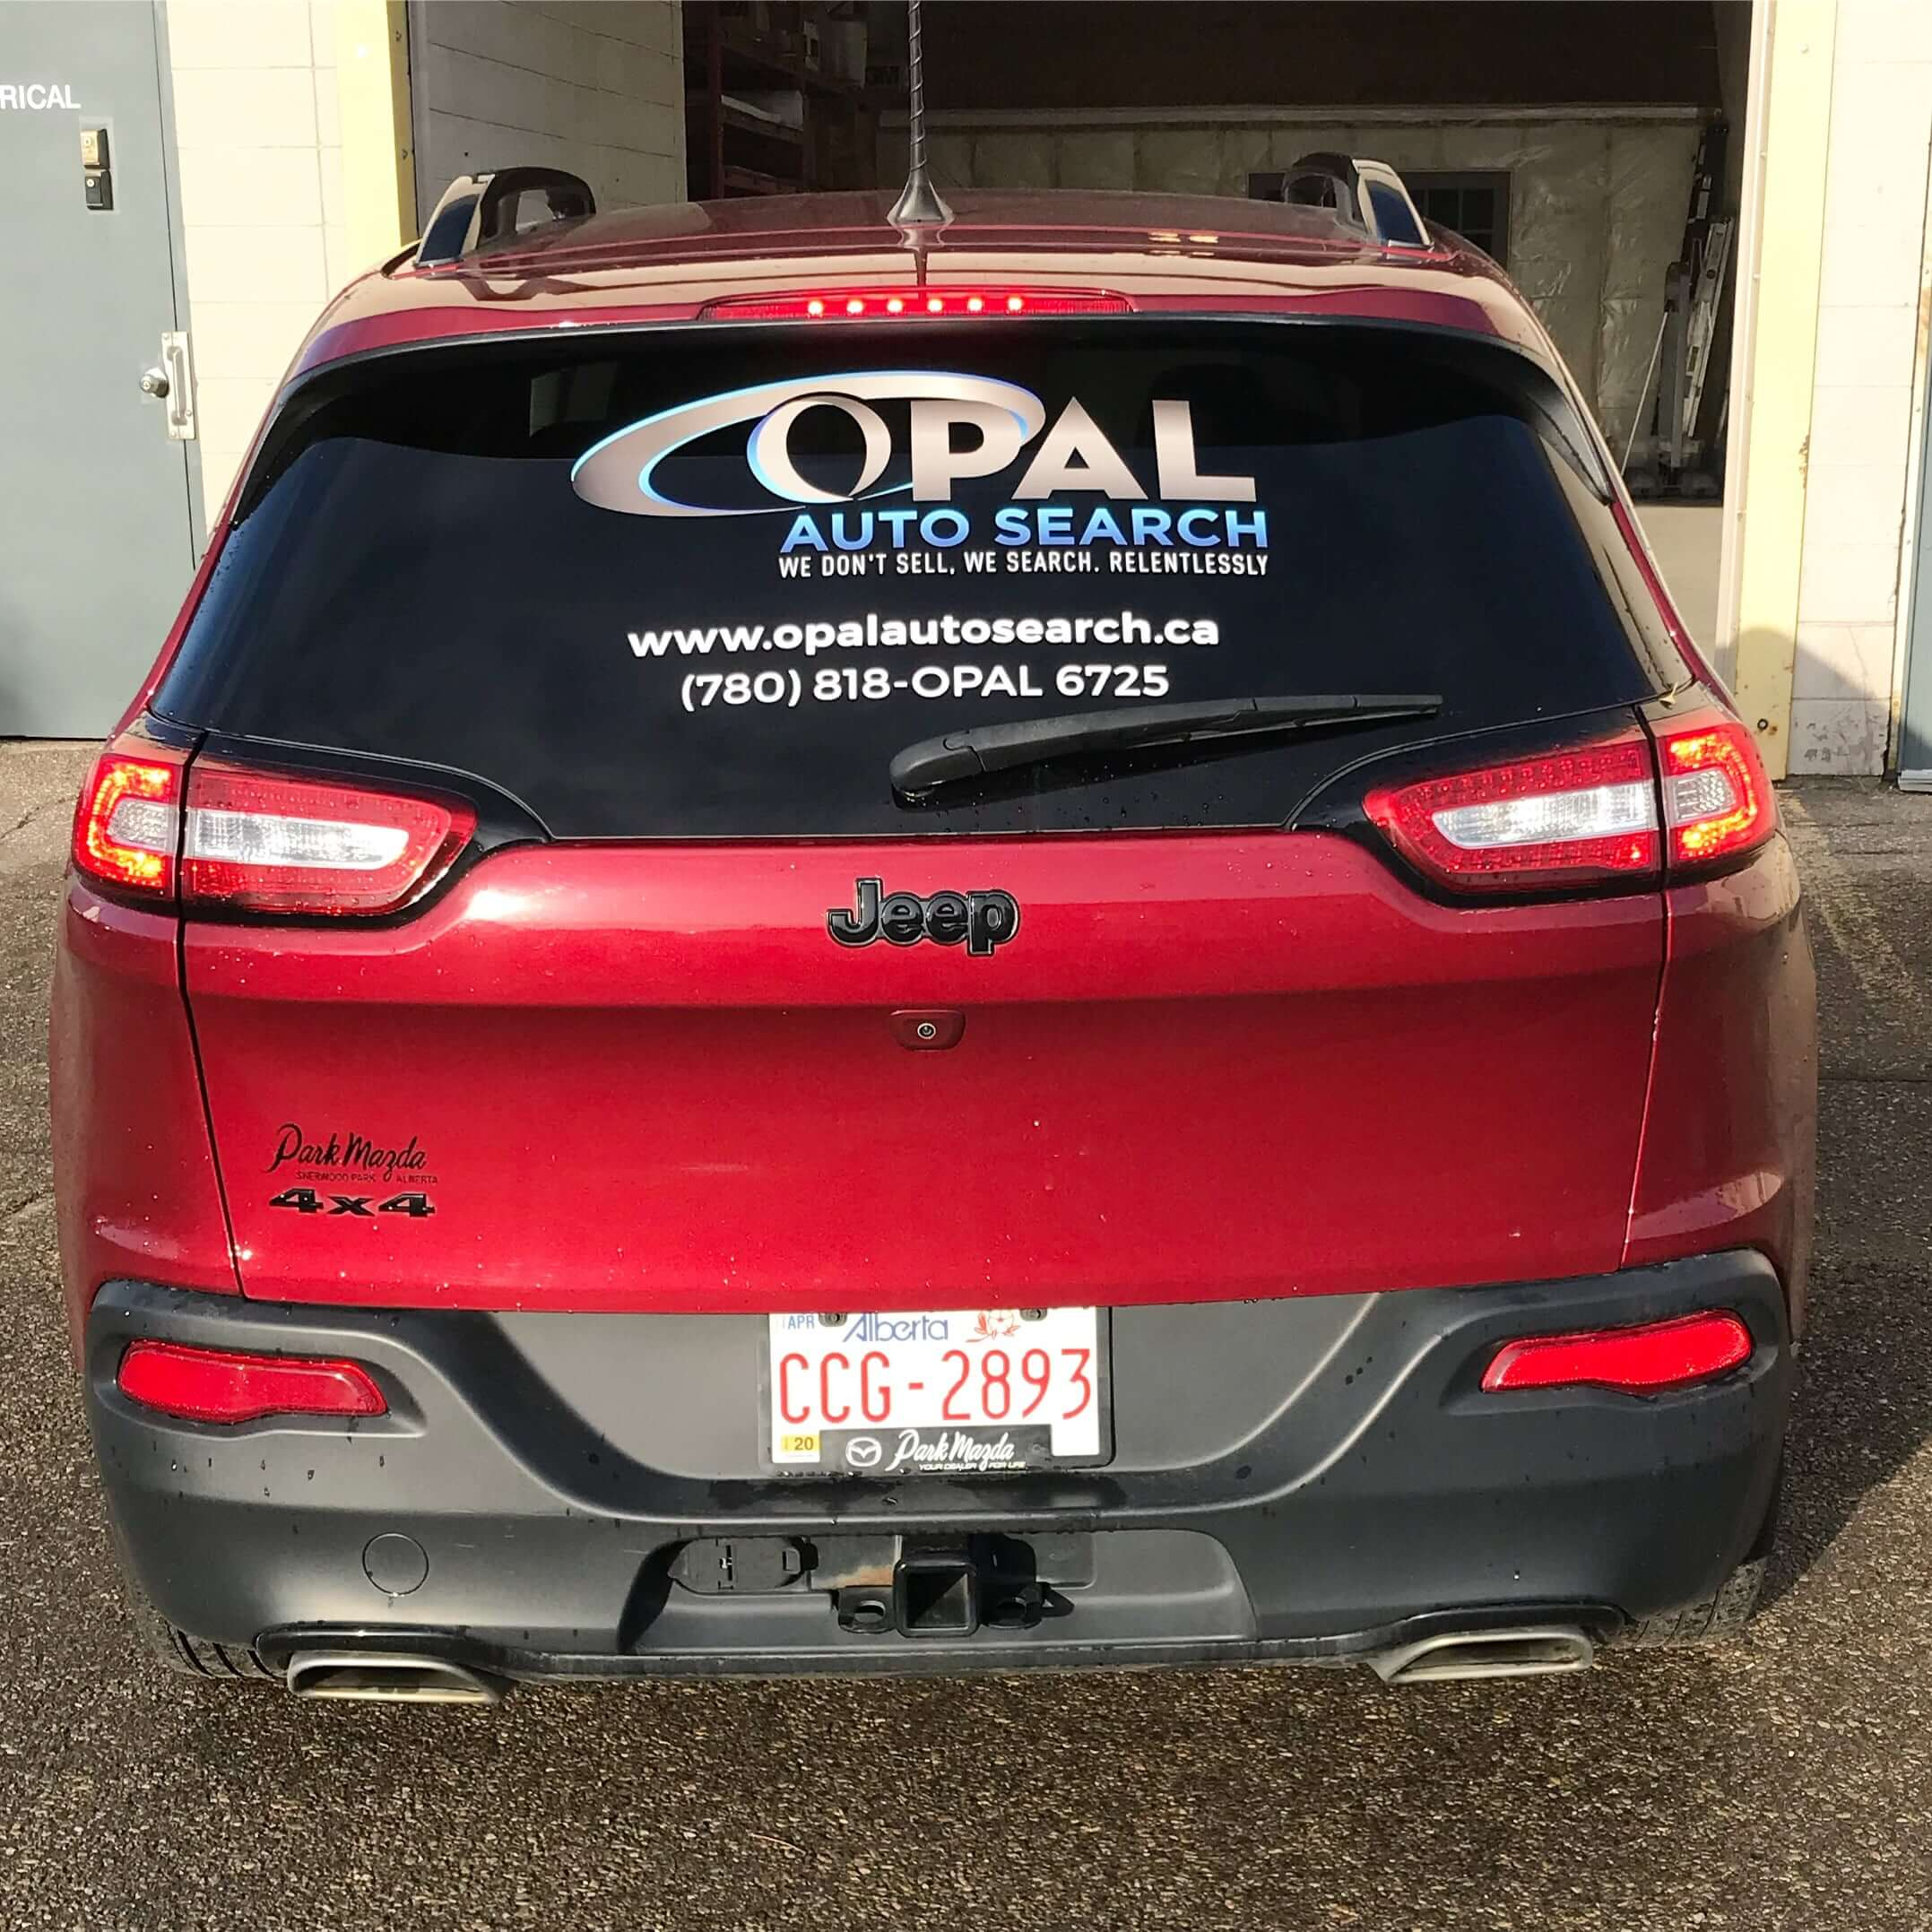 OPAL Auto Search car wraps by 3Sixty Sign Solutions in Edmonton, AB